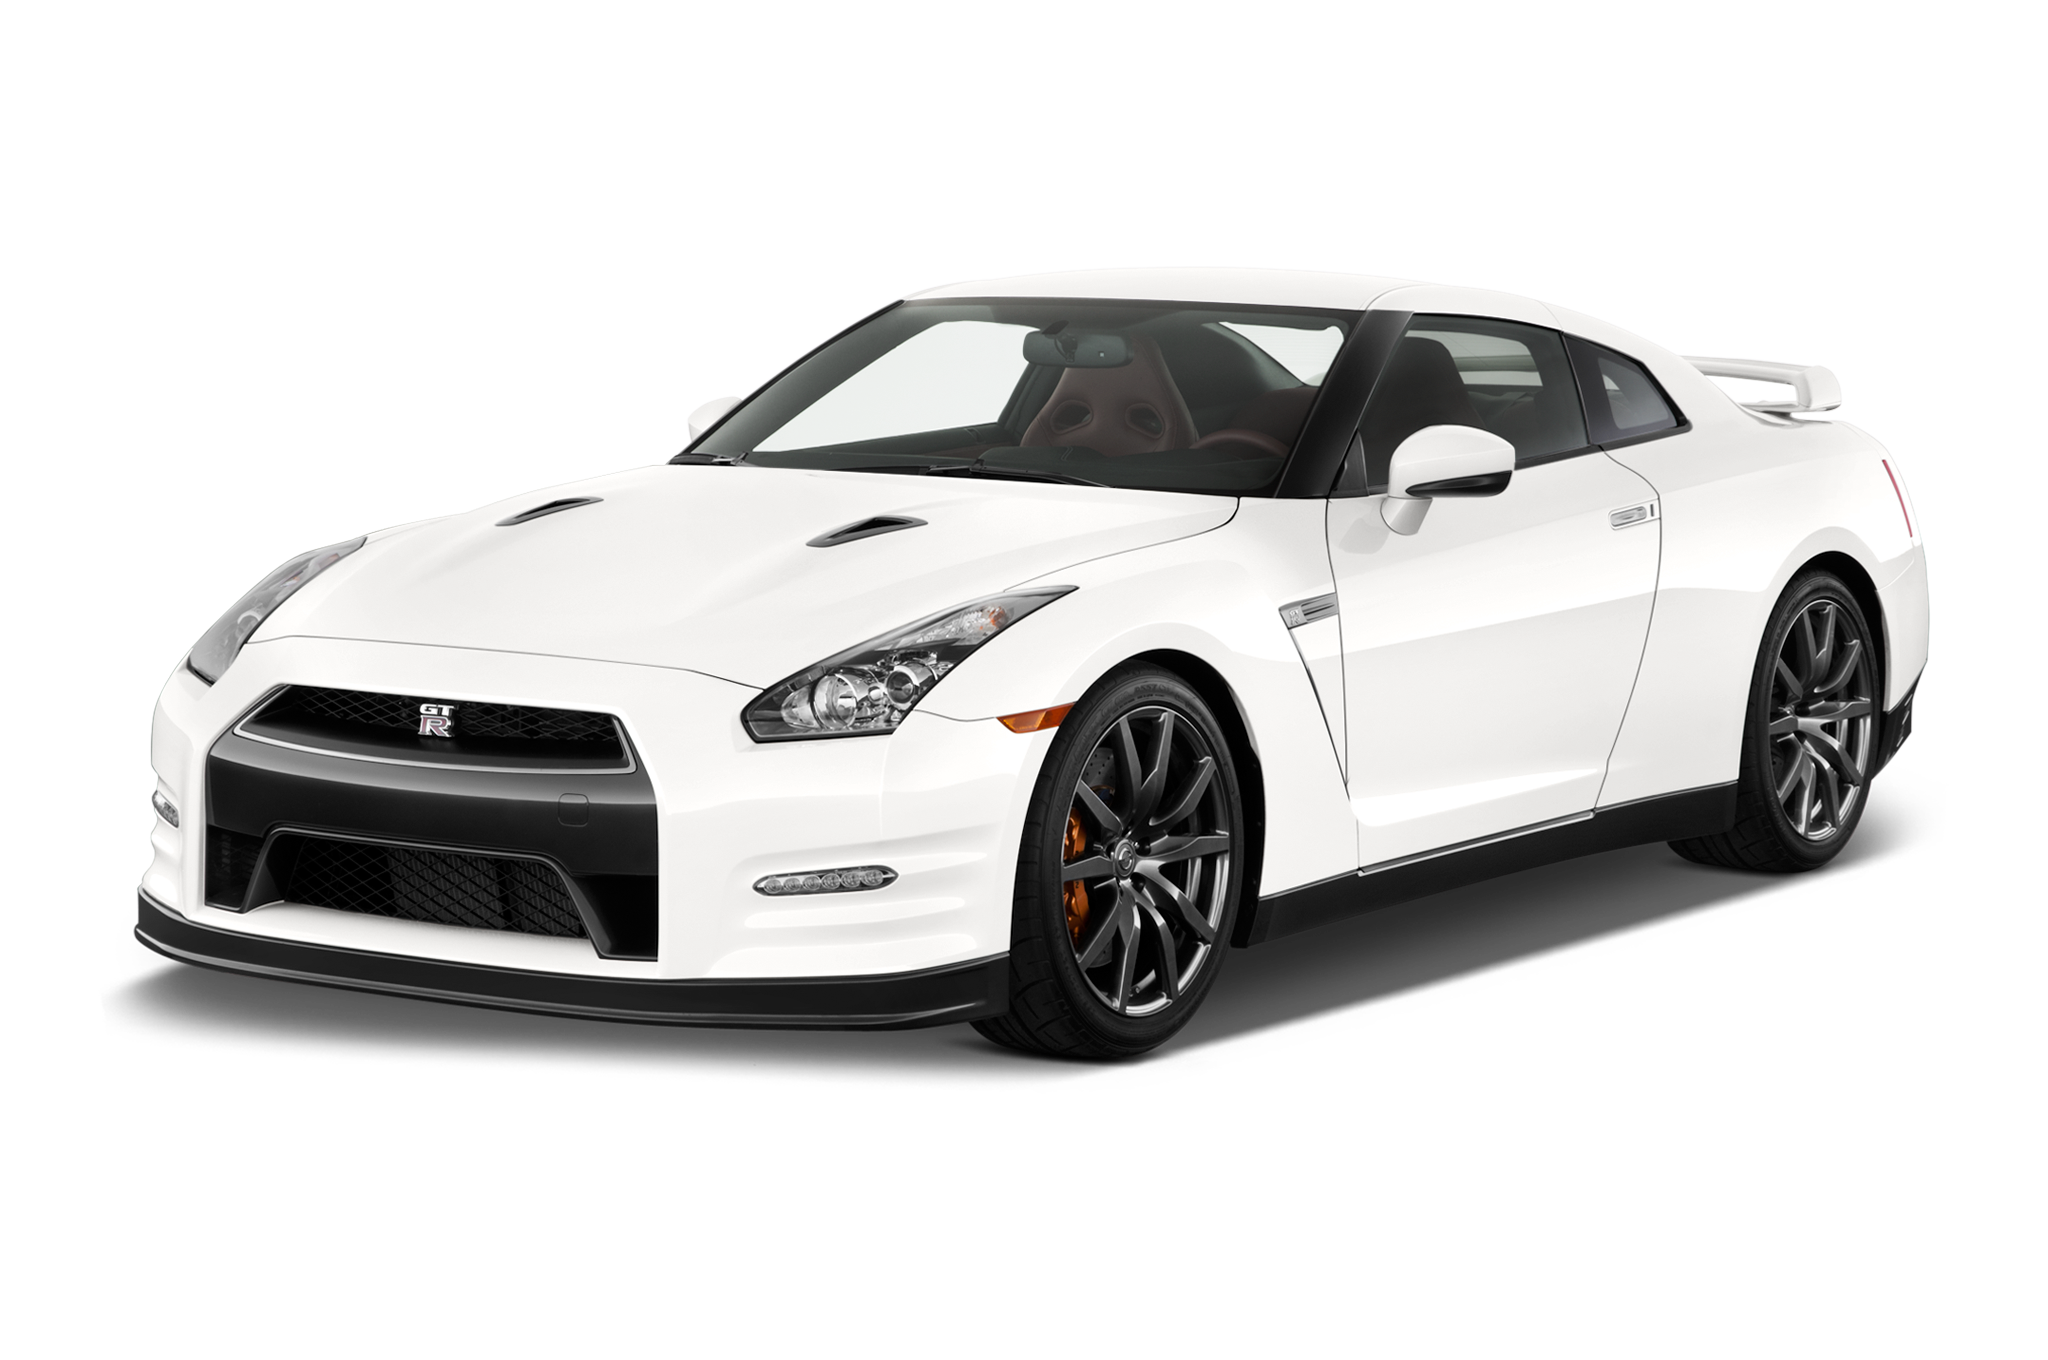 Used Nissan Gt-r for Sale Fresh 2016 Nissan Gt R Reviews and Rating